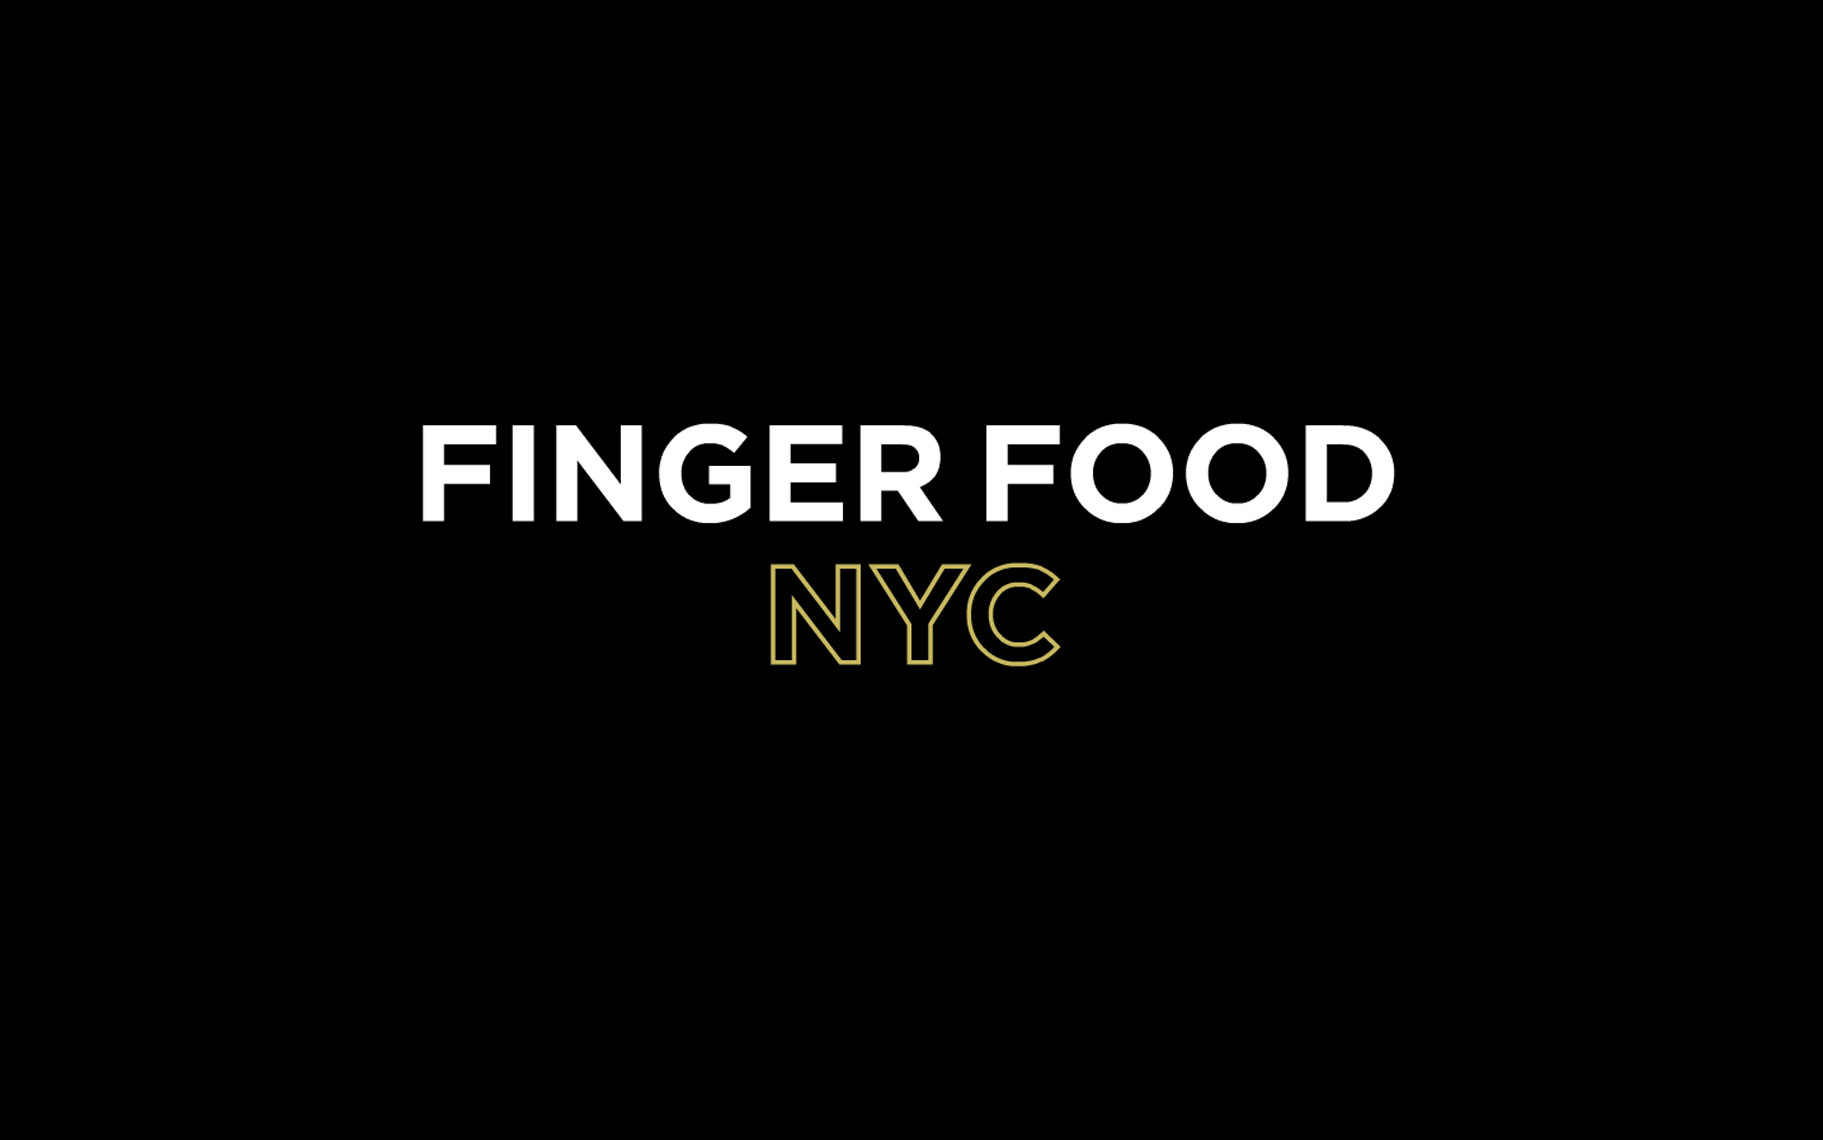 NYC Fingerfood